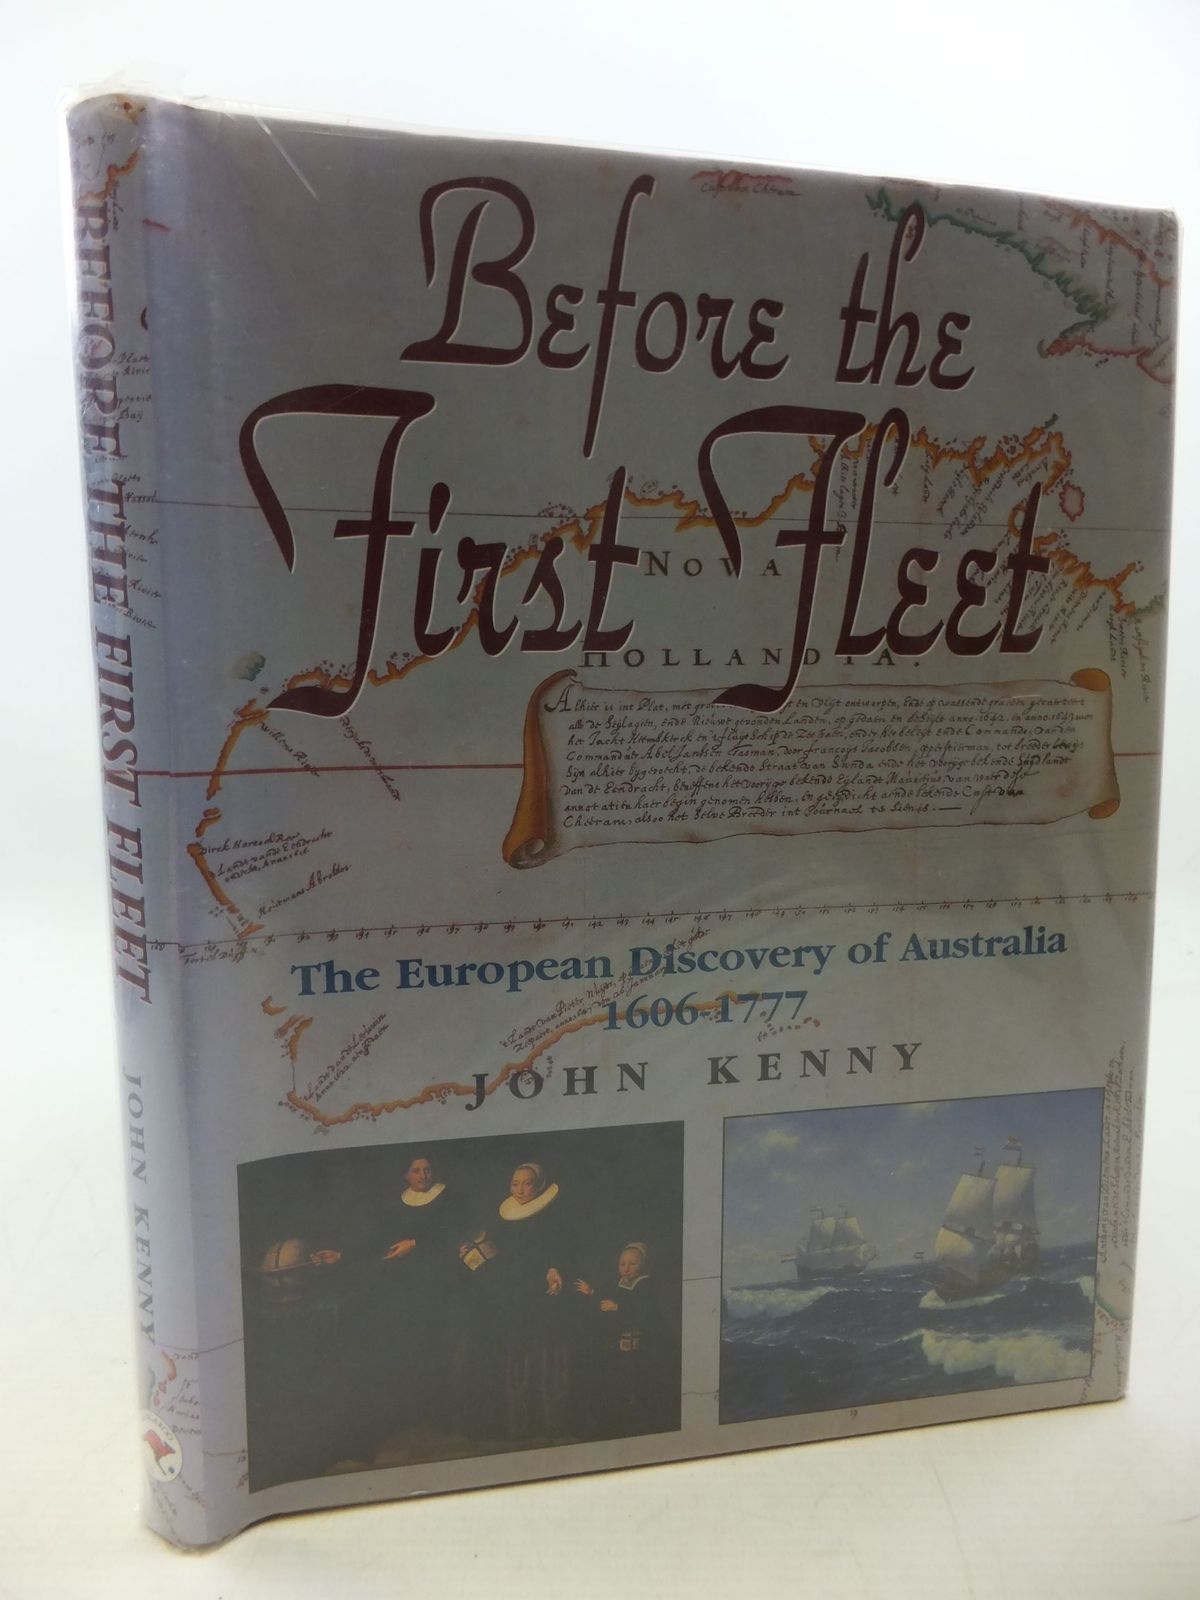 Photo of BEFORE THE FIRST FLEET EUROPEANS IN AUSTRALIA 1606-1777 written by Kenny, John published by Kangaroo Press (STOCK CODE: 1710281)  for sale by Stella & Rose's Books